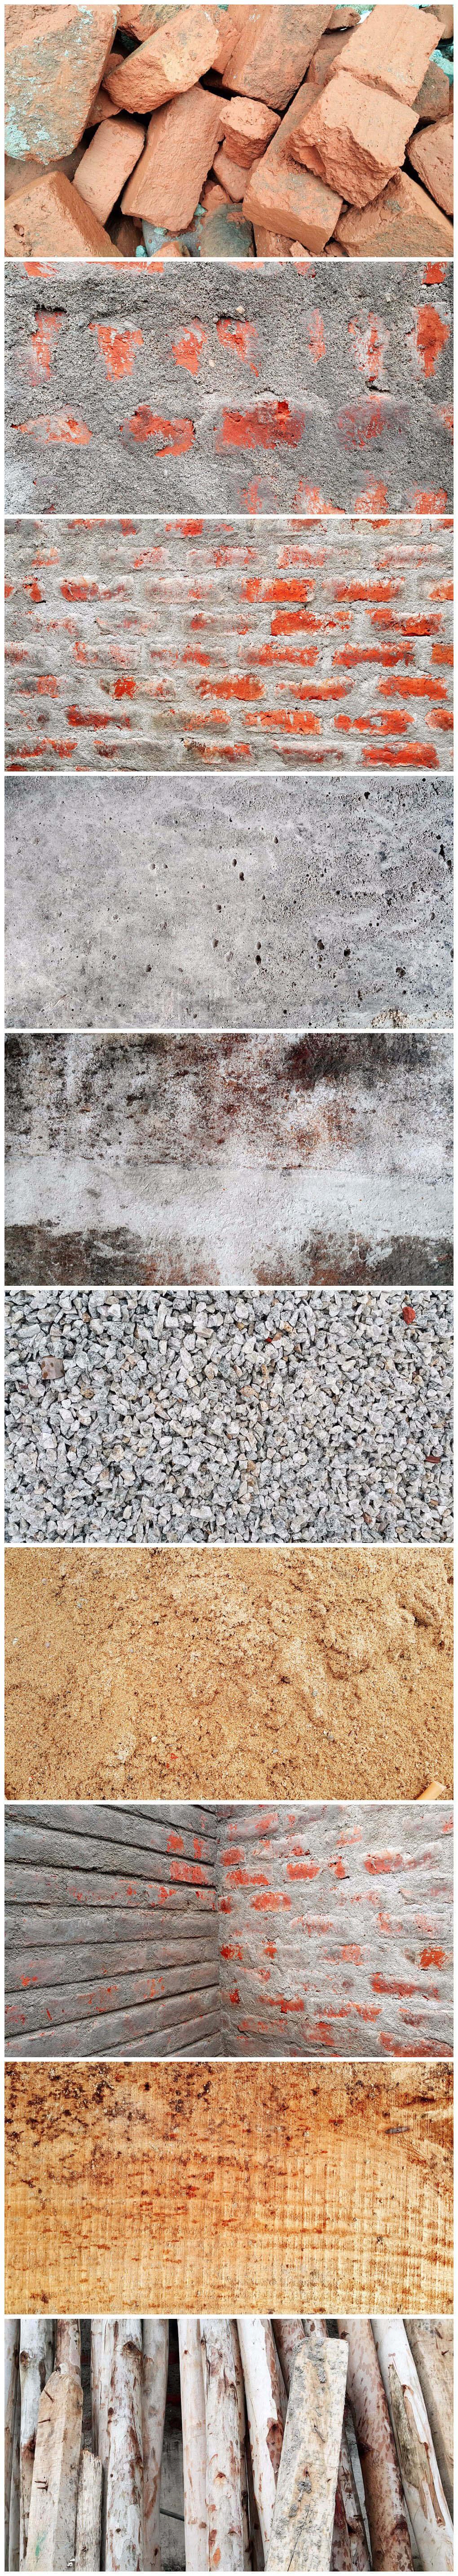 Construction Material Textures